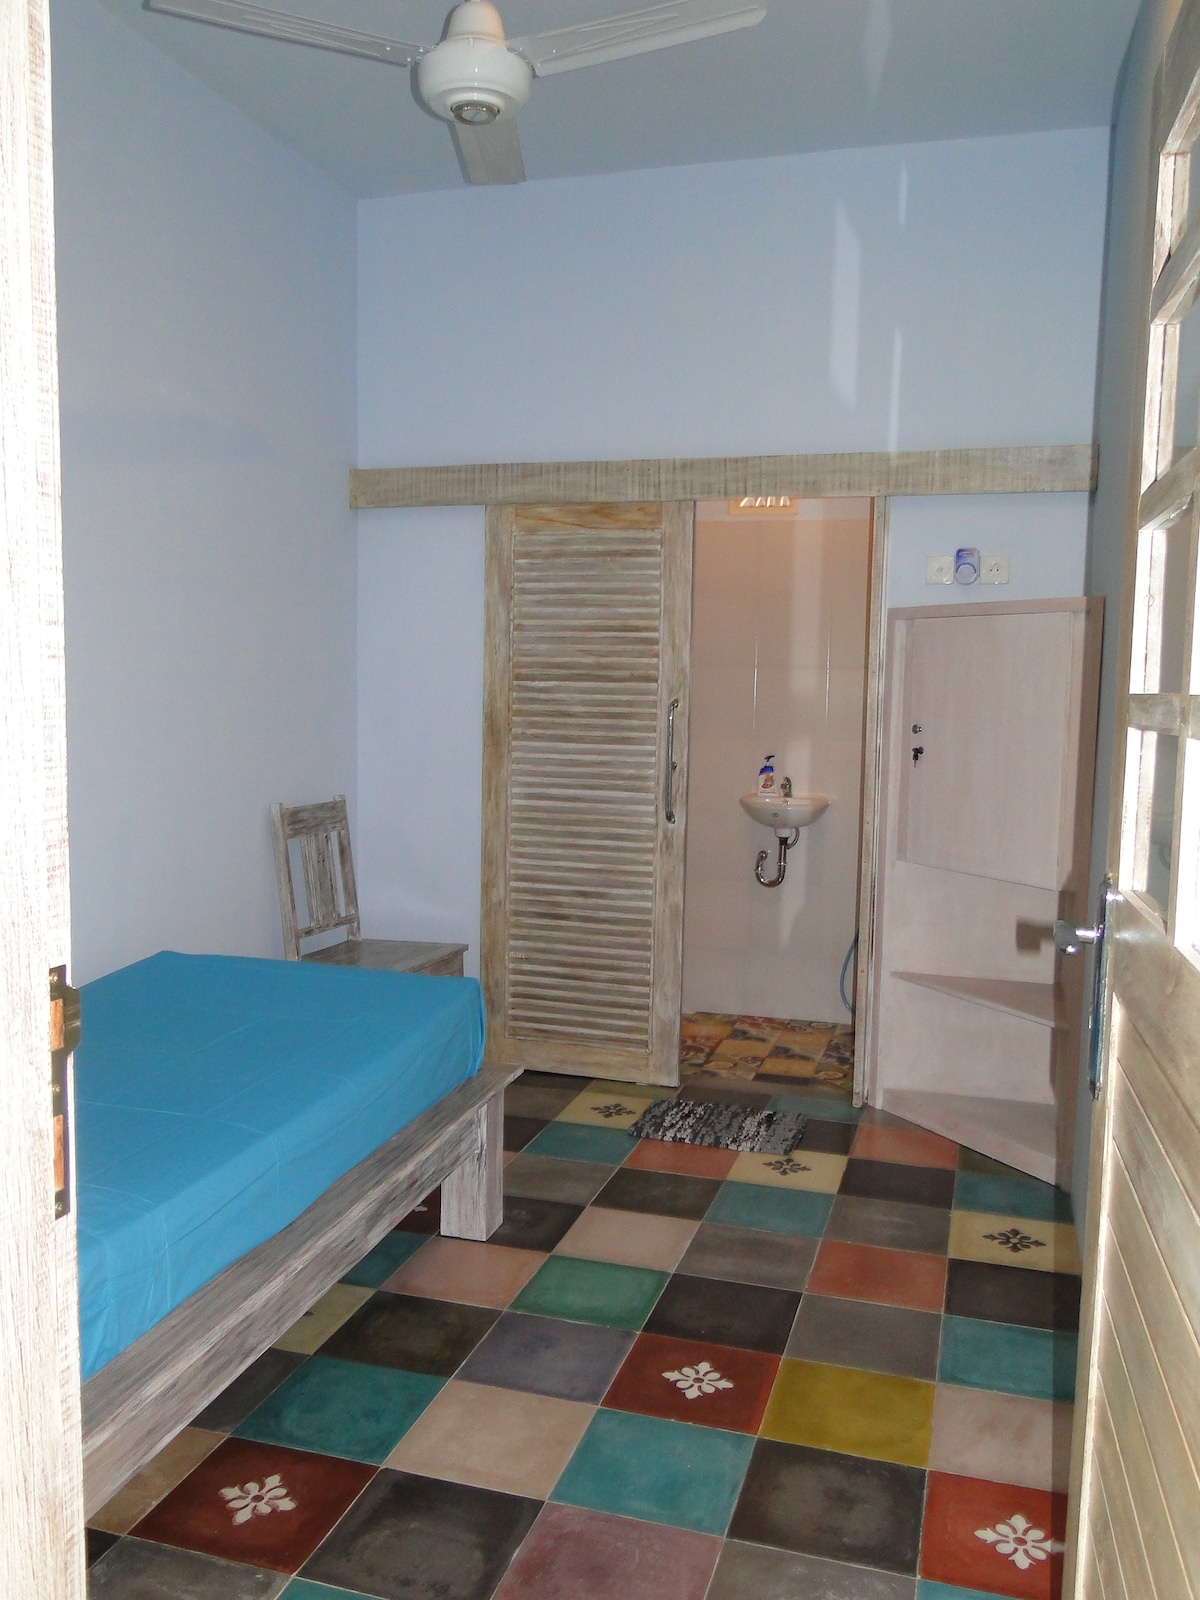 single room #2 - lockable cabinets and ensuite bathroom with own hot water